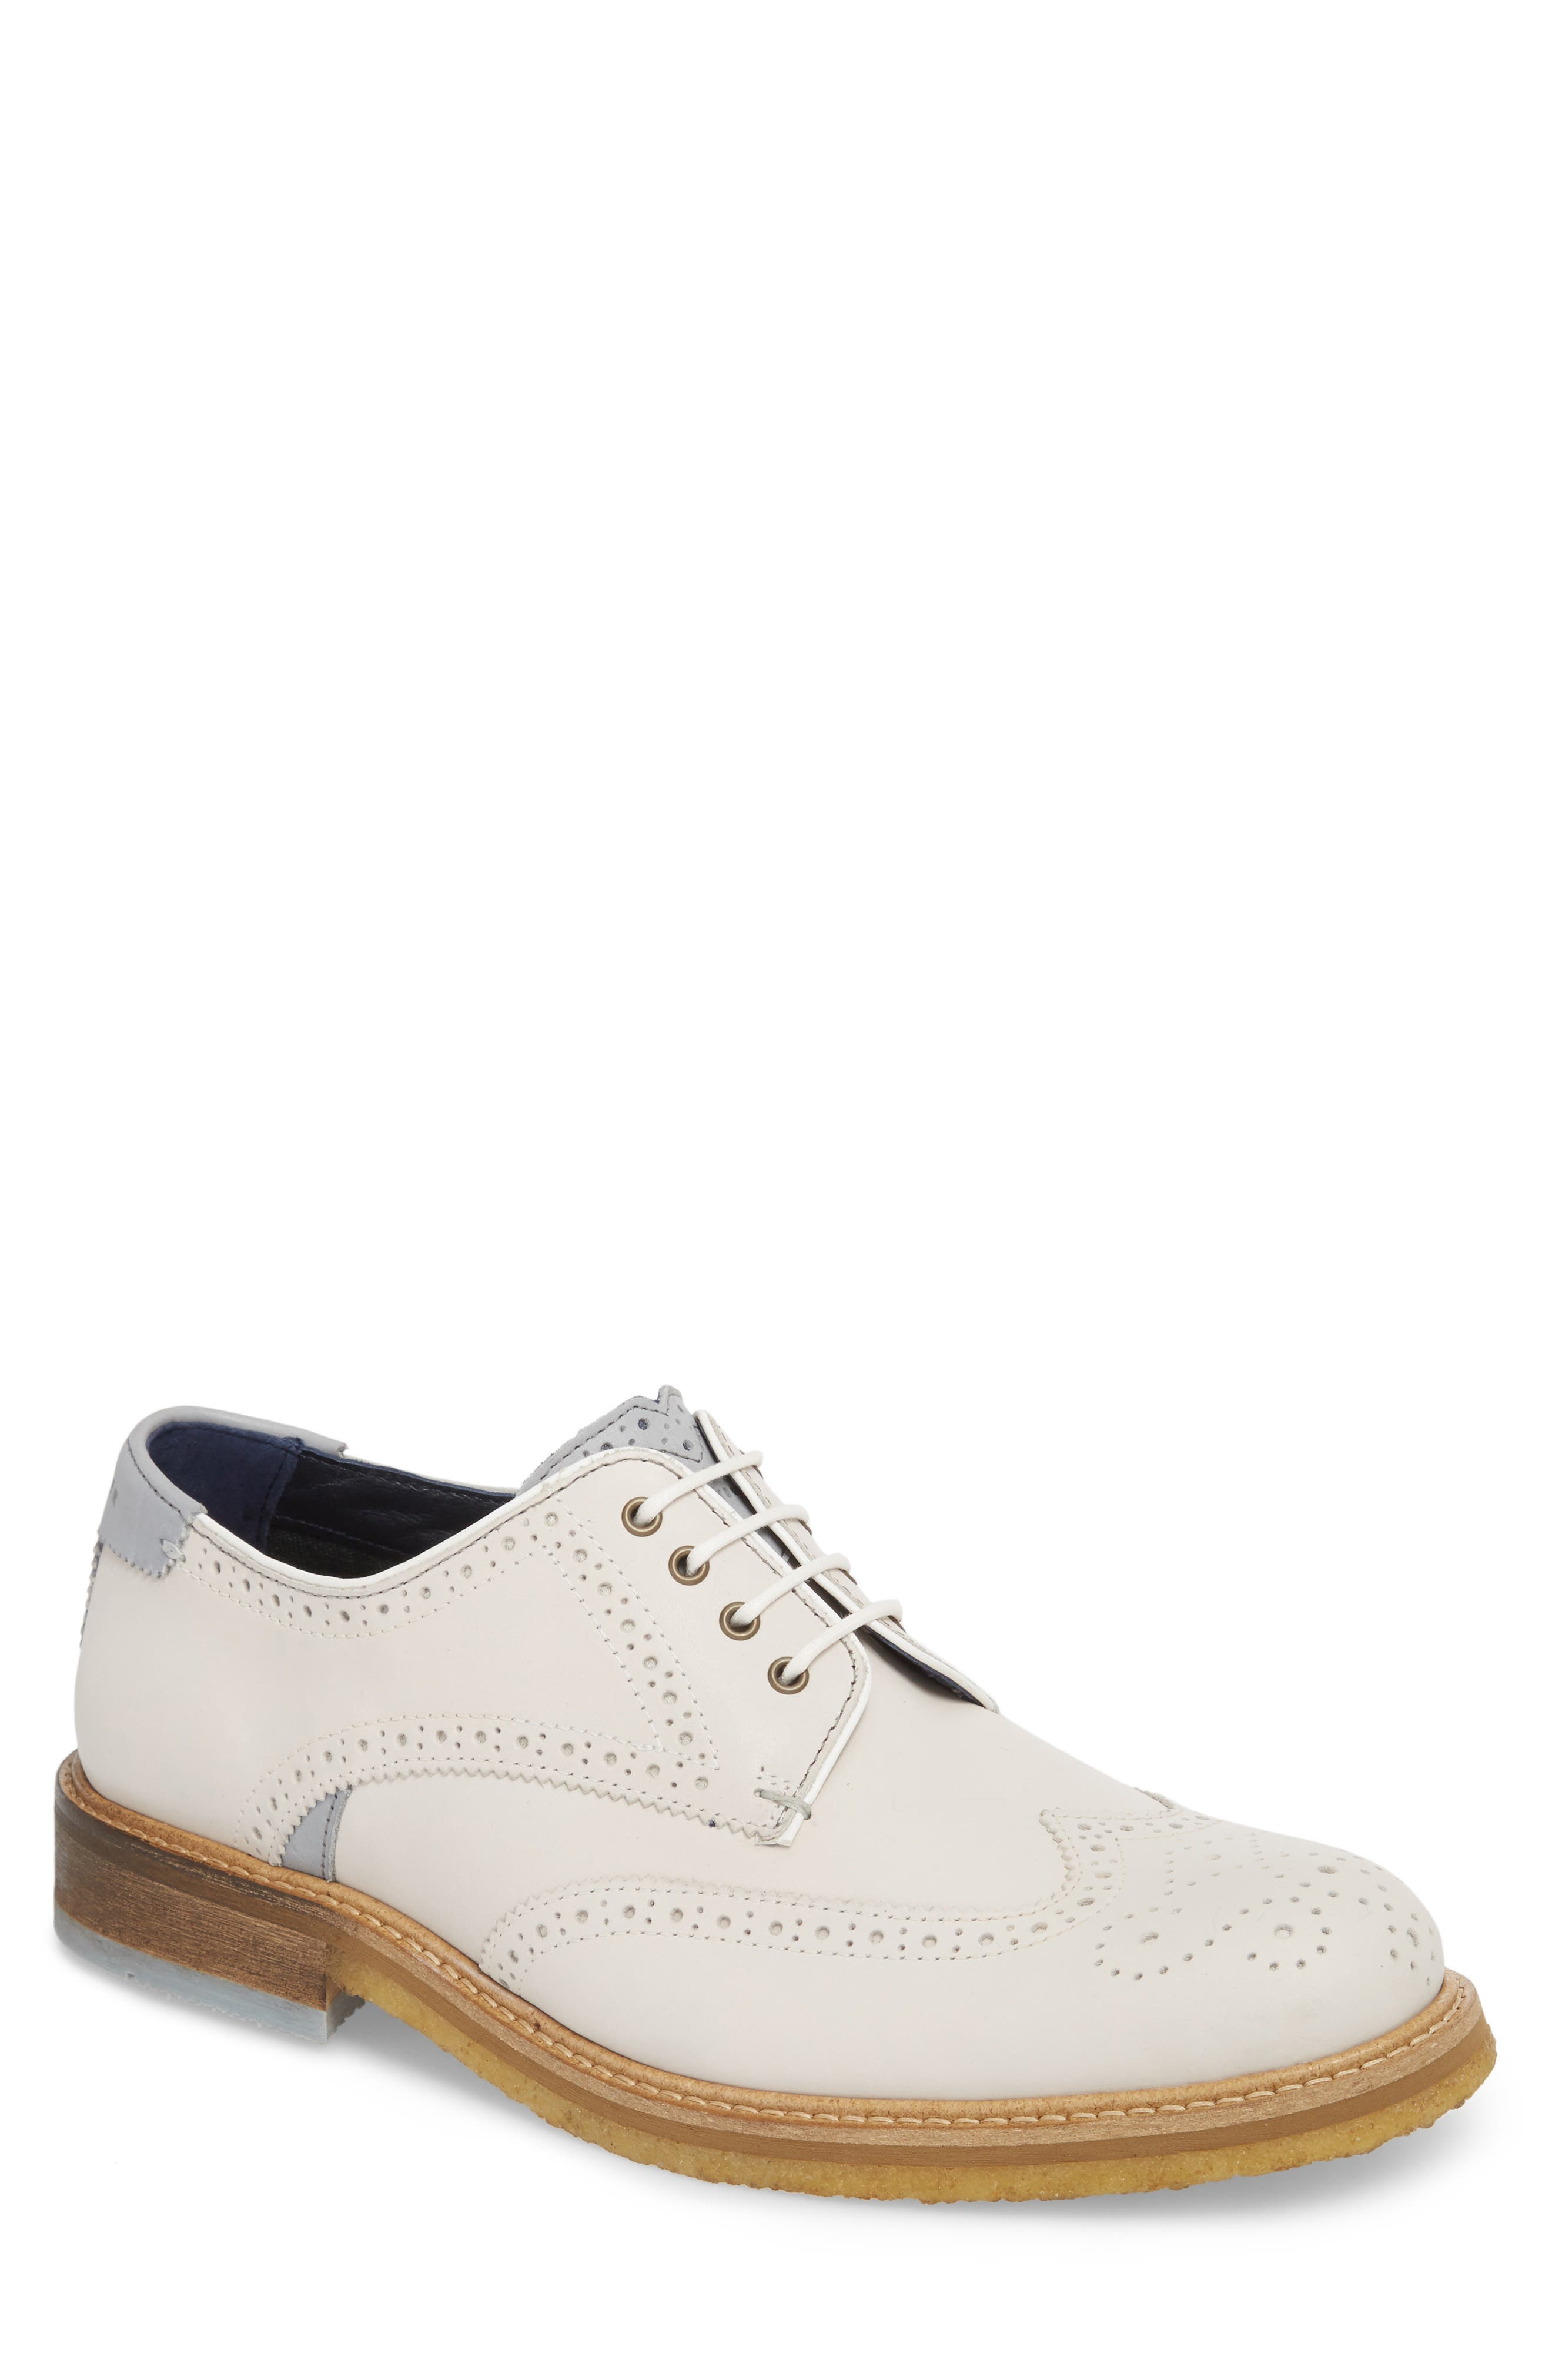 Prycce Wingtip Derby,                             Main thumbnail 1, color,                             White Suede